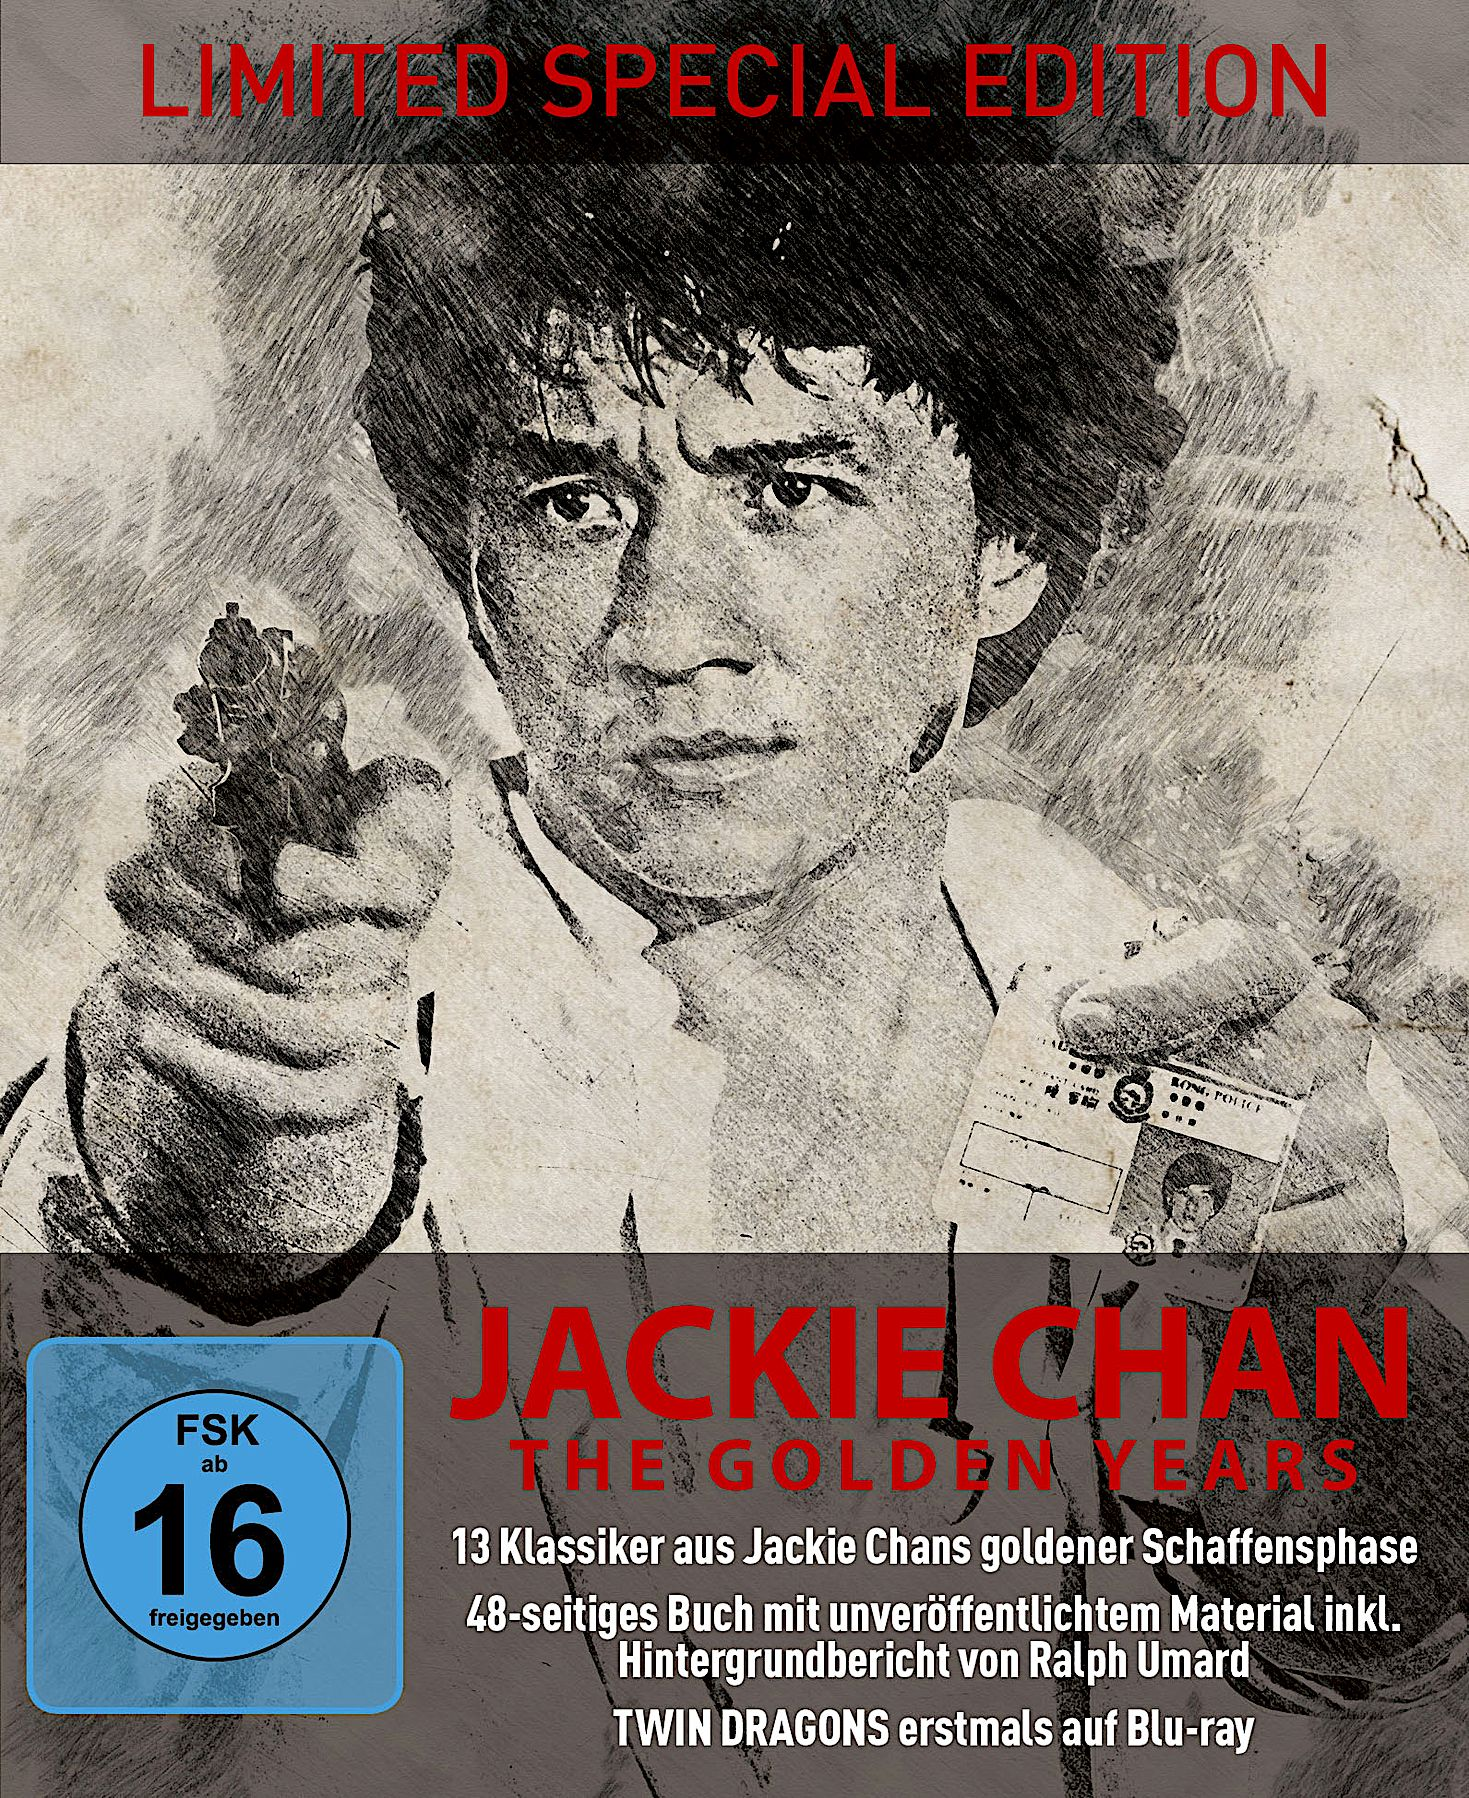 Jackie Chan The Golden Years Limited Special Edition Blu Ray Set Germany Splendid Film Jackie Chan The Golden Years Blu Ray